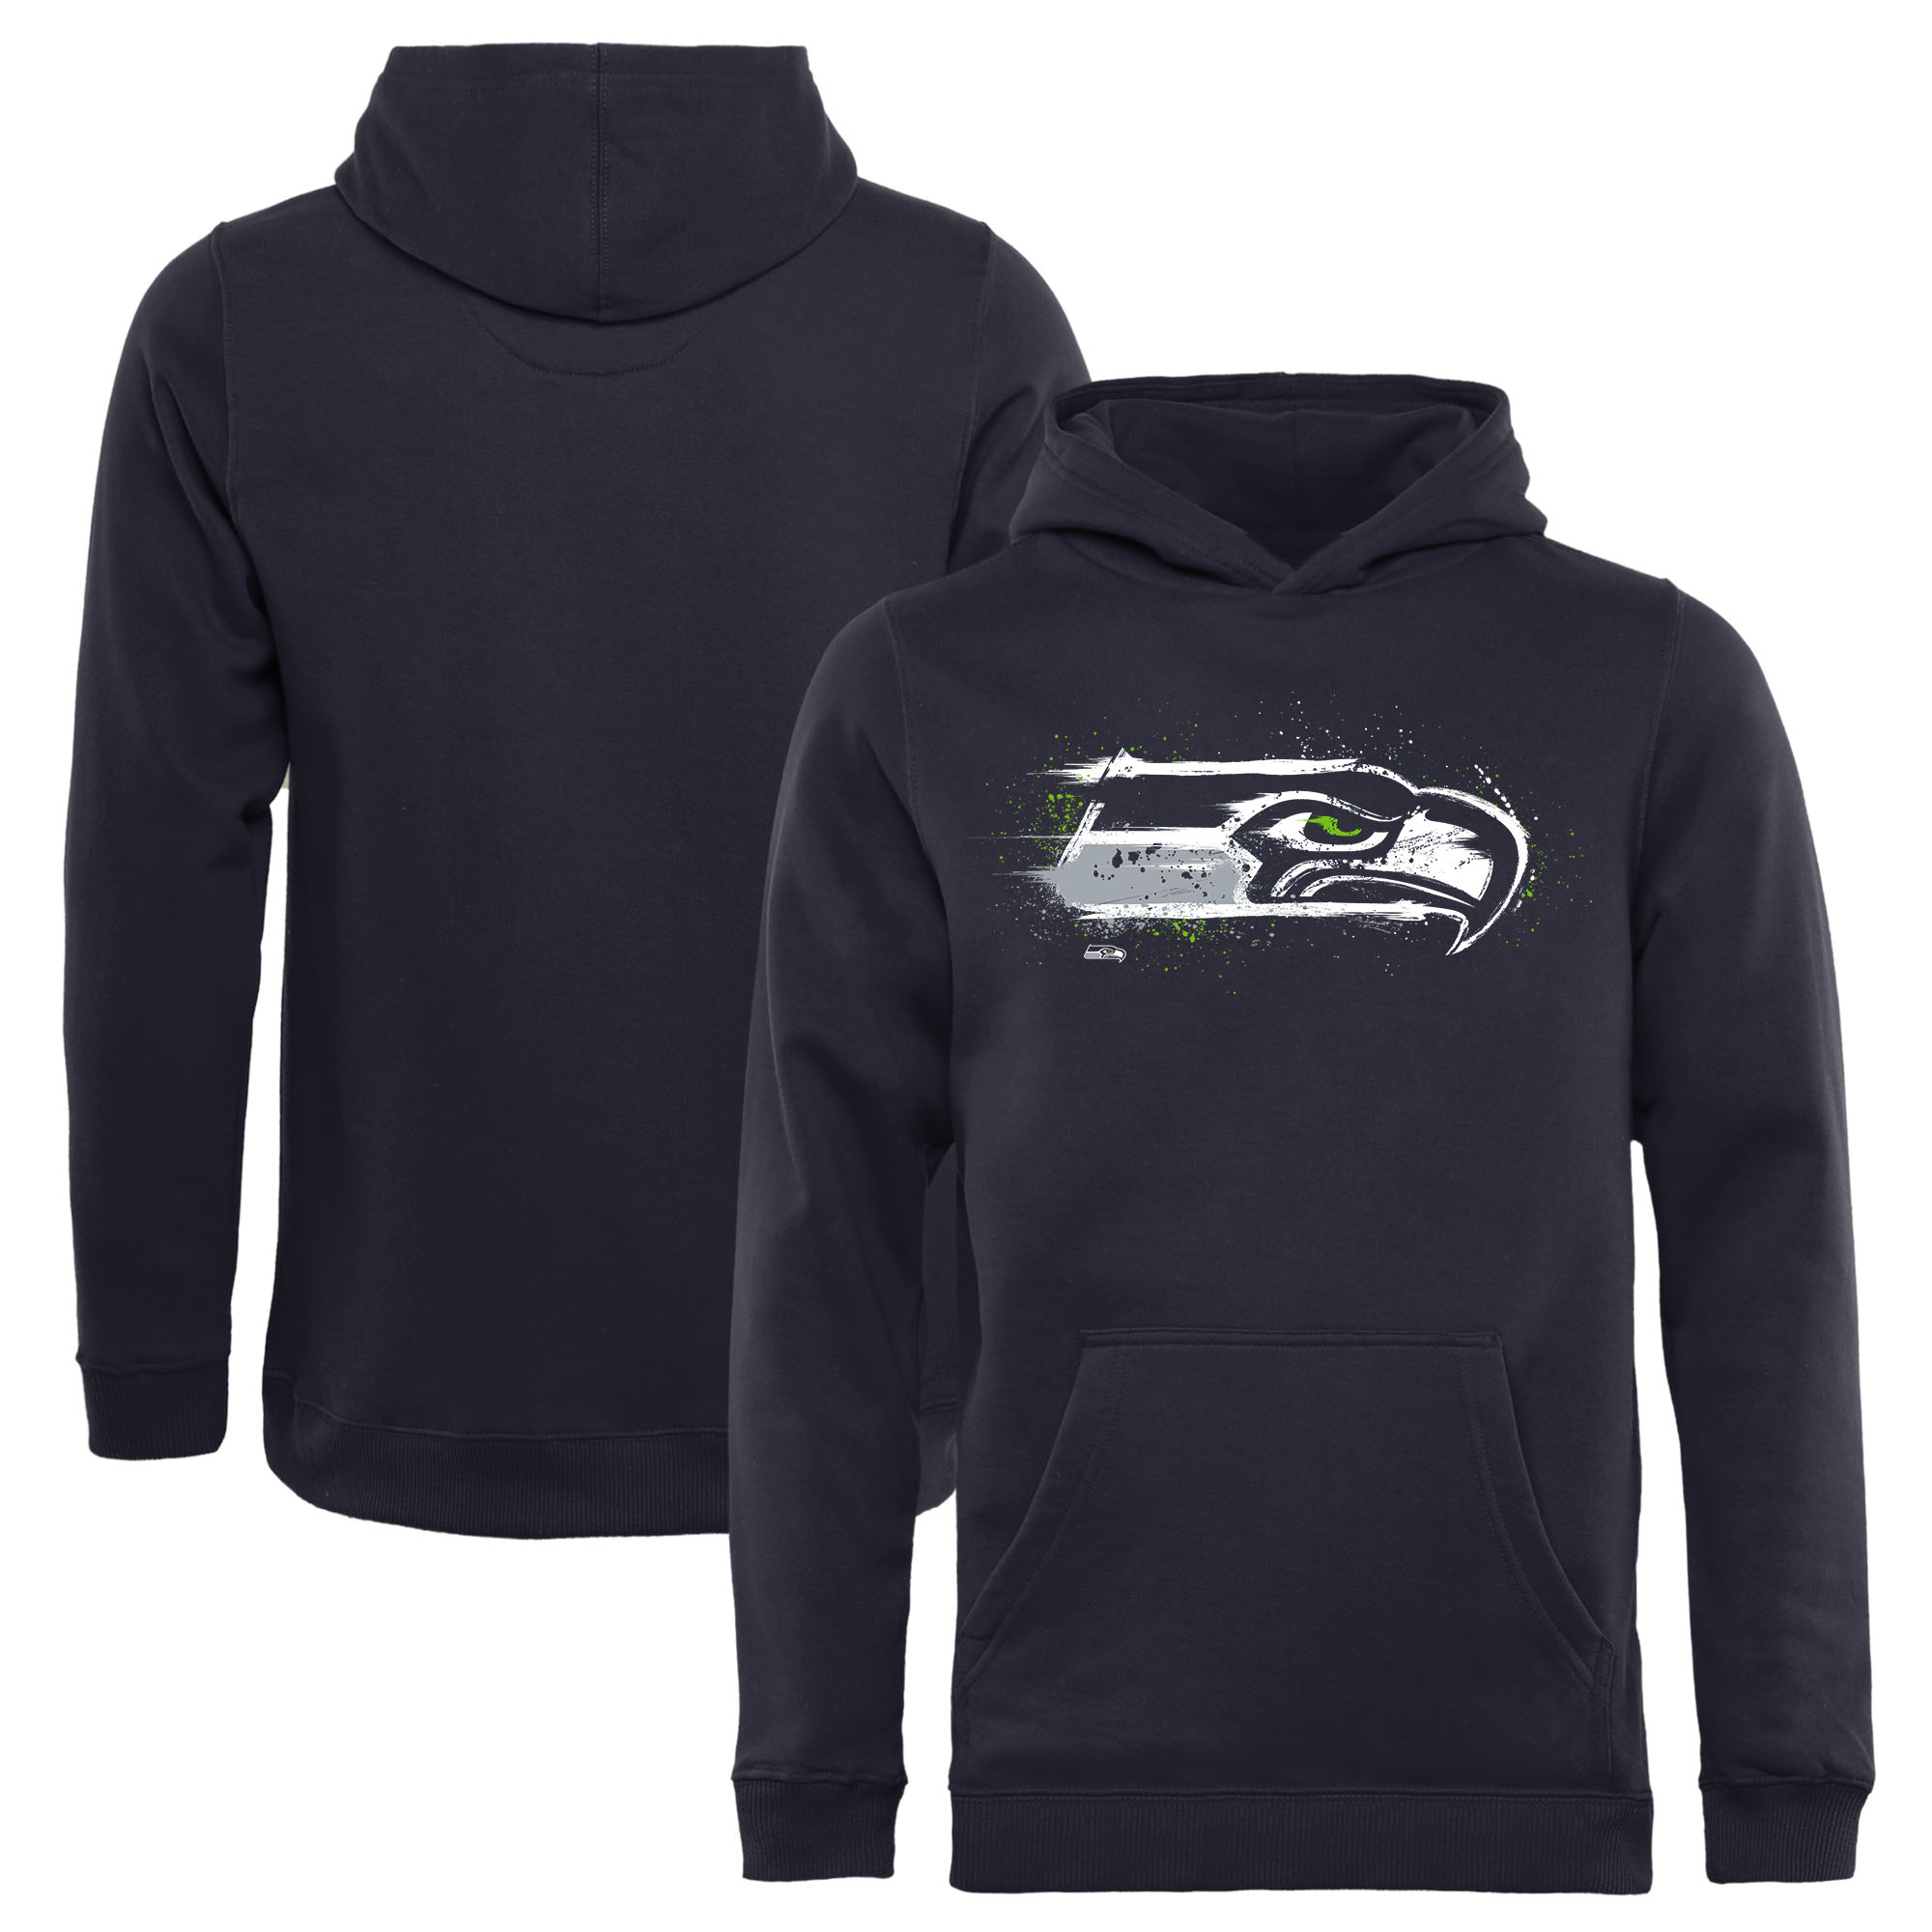 Seattle Seahawks NFL Pro Line by Fanatics Branded Youth Splatter Logo Pullover Hoodie - College Navy